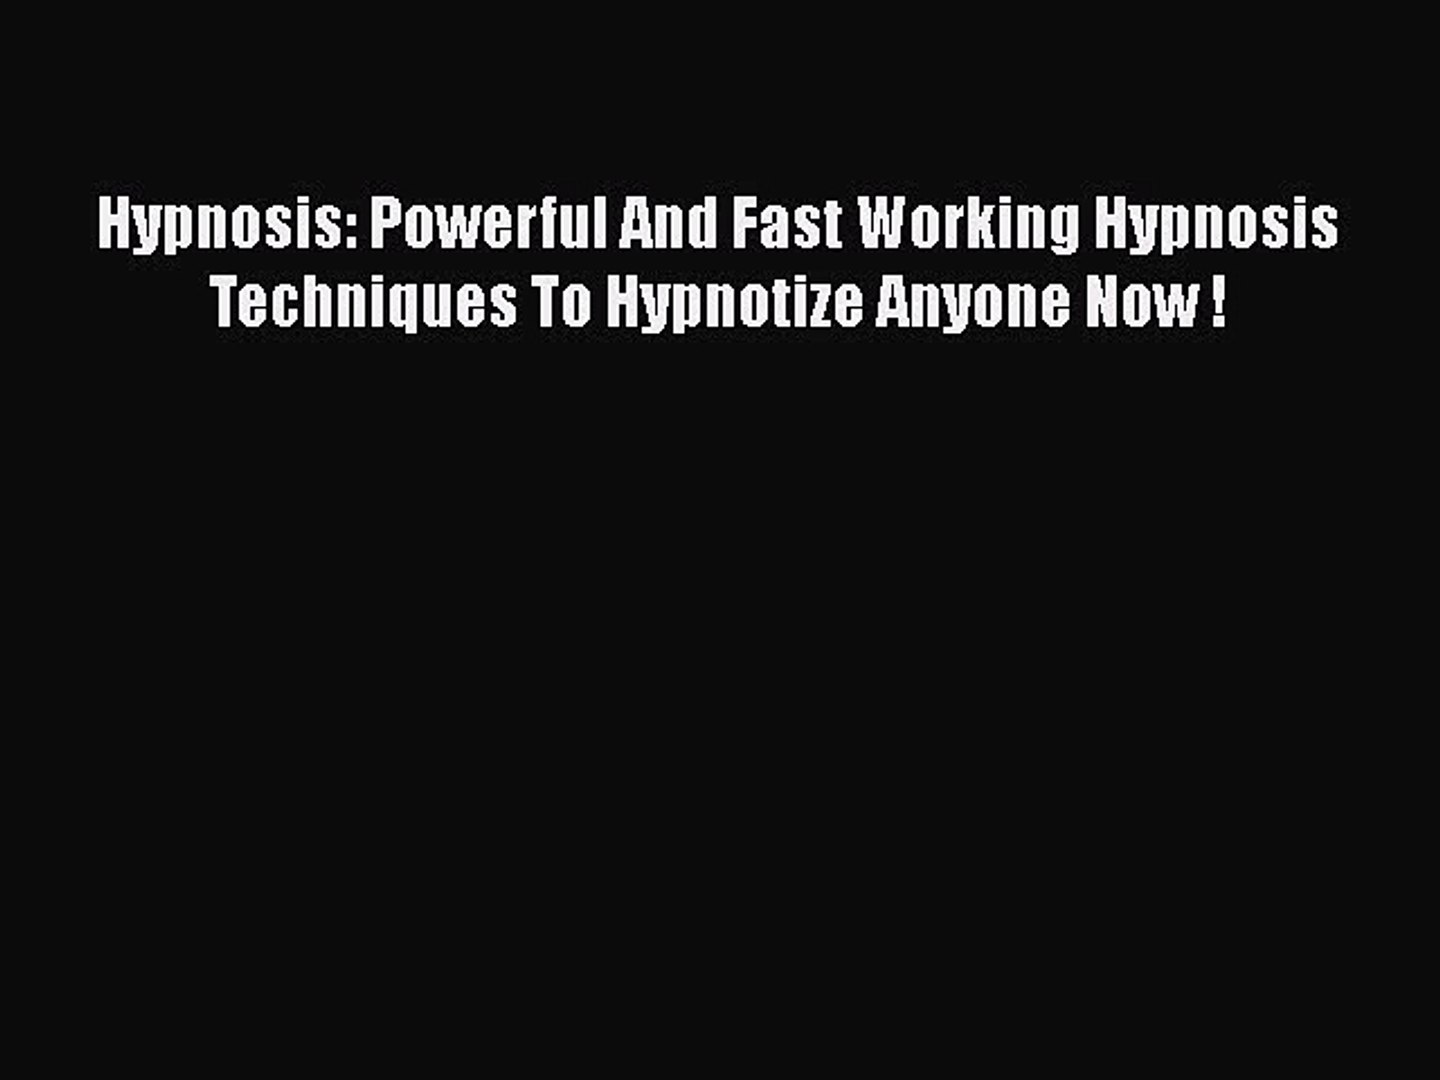 Hypnosis Powerful And Fast Working Hypnosis Techniques To Hypnotize Anyone Now !